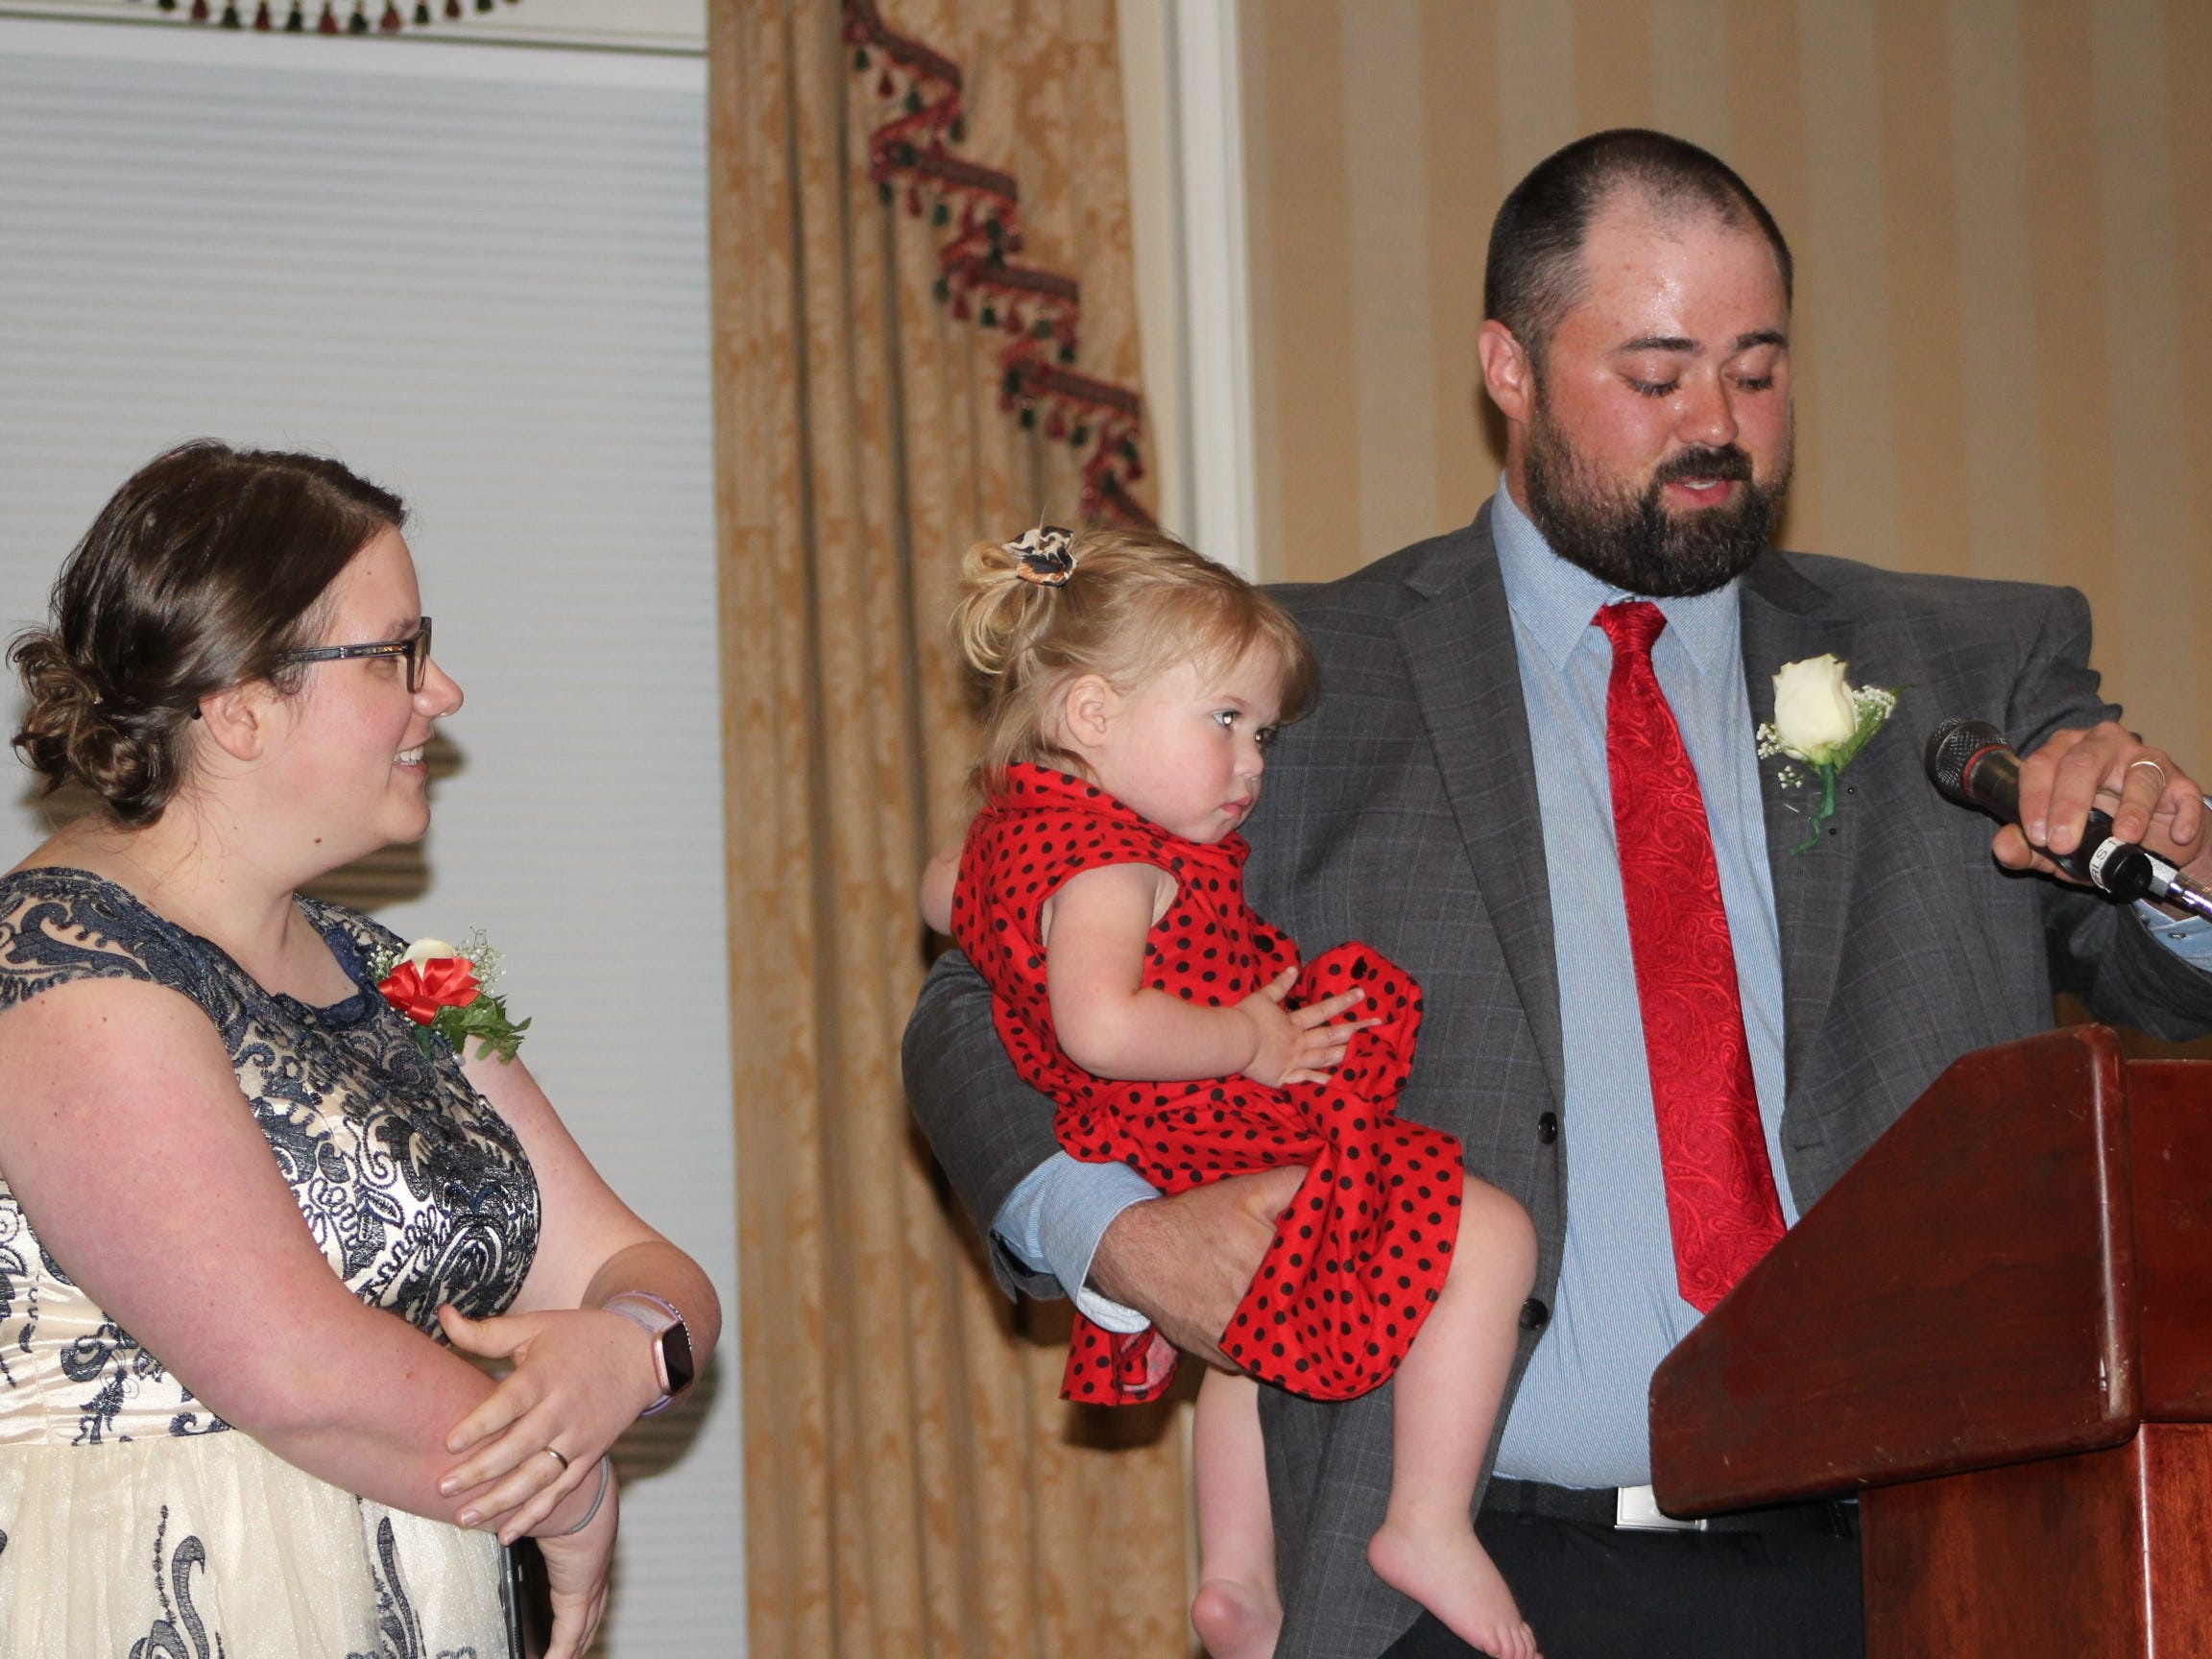 Two-year-old Bristol Miller was the star of the 2019 York Heart Ball. Her parents, Leah and Josh share the story of BristolÕs sudden cardiac arrest and how immediate bystander CPR saved her life. More than 175 business, healthcare and community leaders from across York County came out to support the Grease-themed 2019 York Heart Ball, ÒRev Up Your Heart,Ó on Saturday, April 27 at the Country Club of York. The event raised nearly $200,000 for the American Heart Association, the worldÕs leading voluntary health organization focused on heart and brain health. submitted